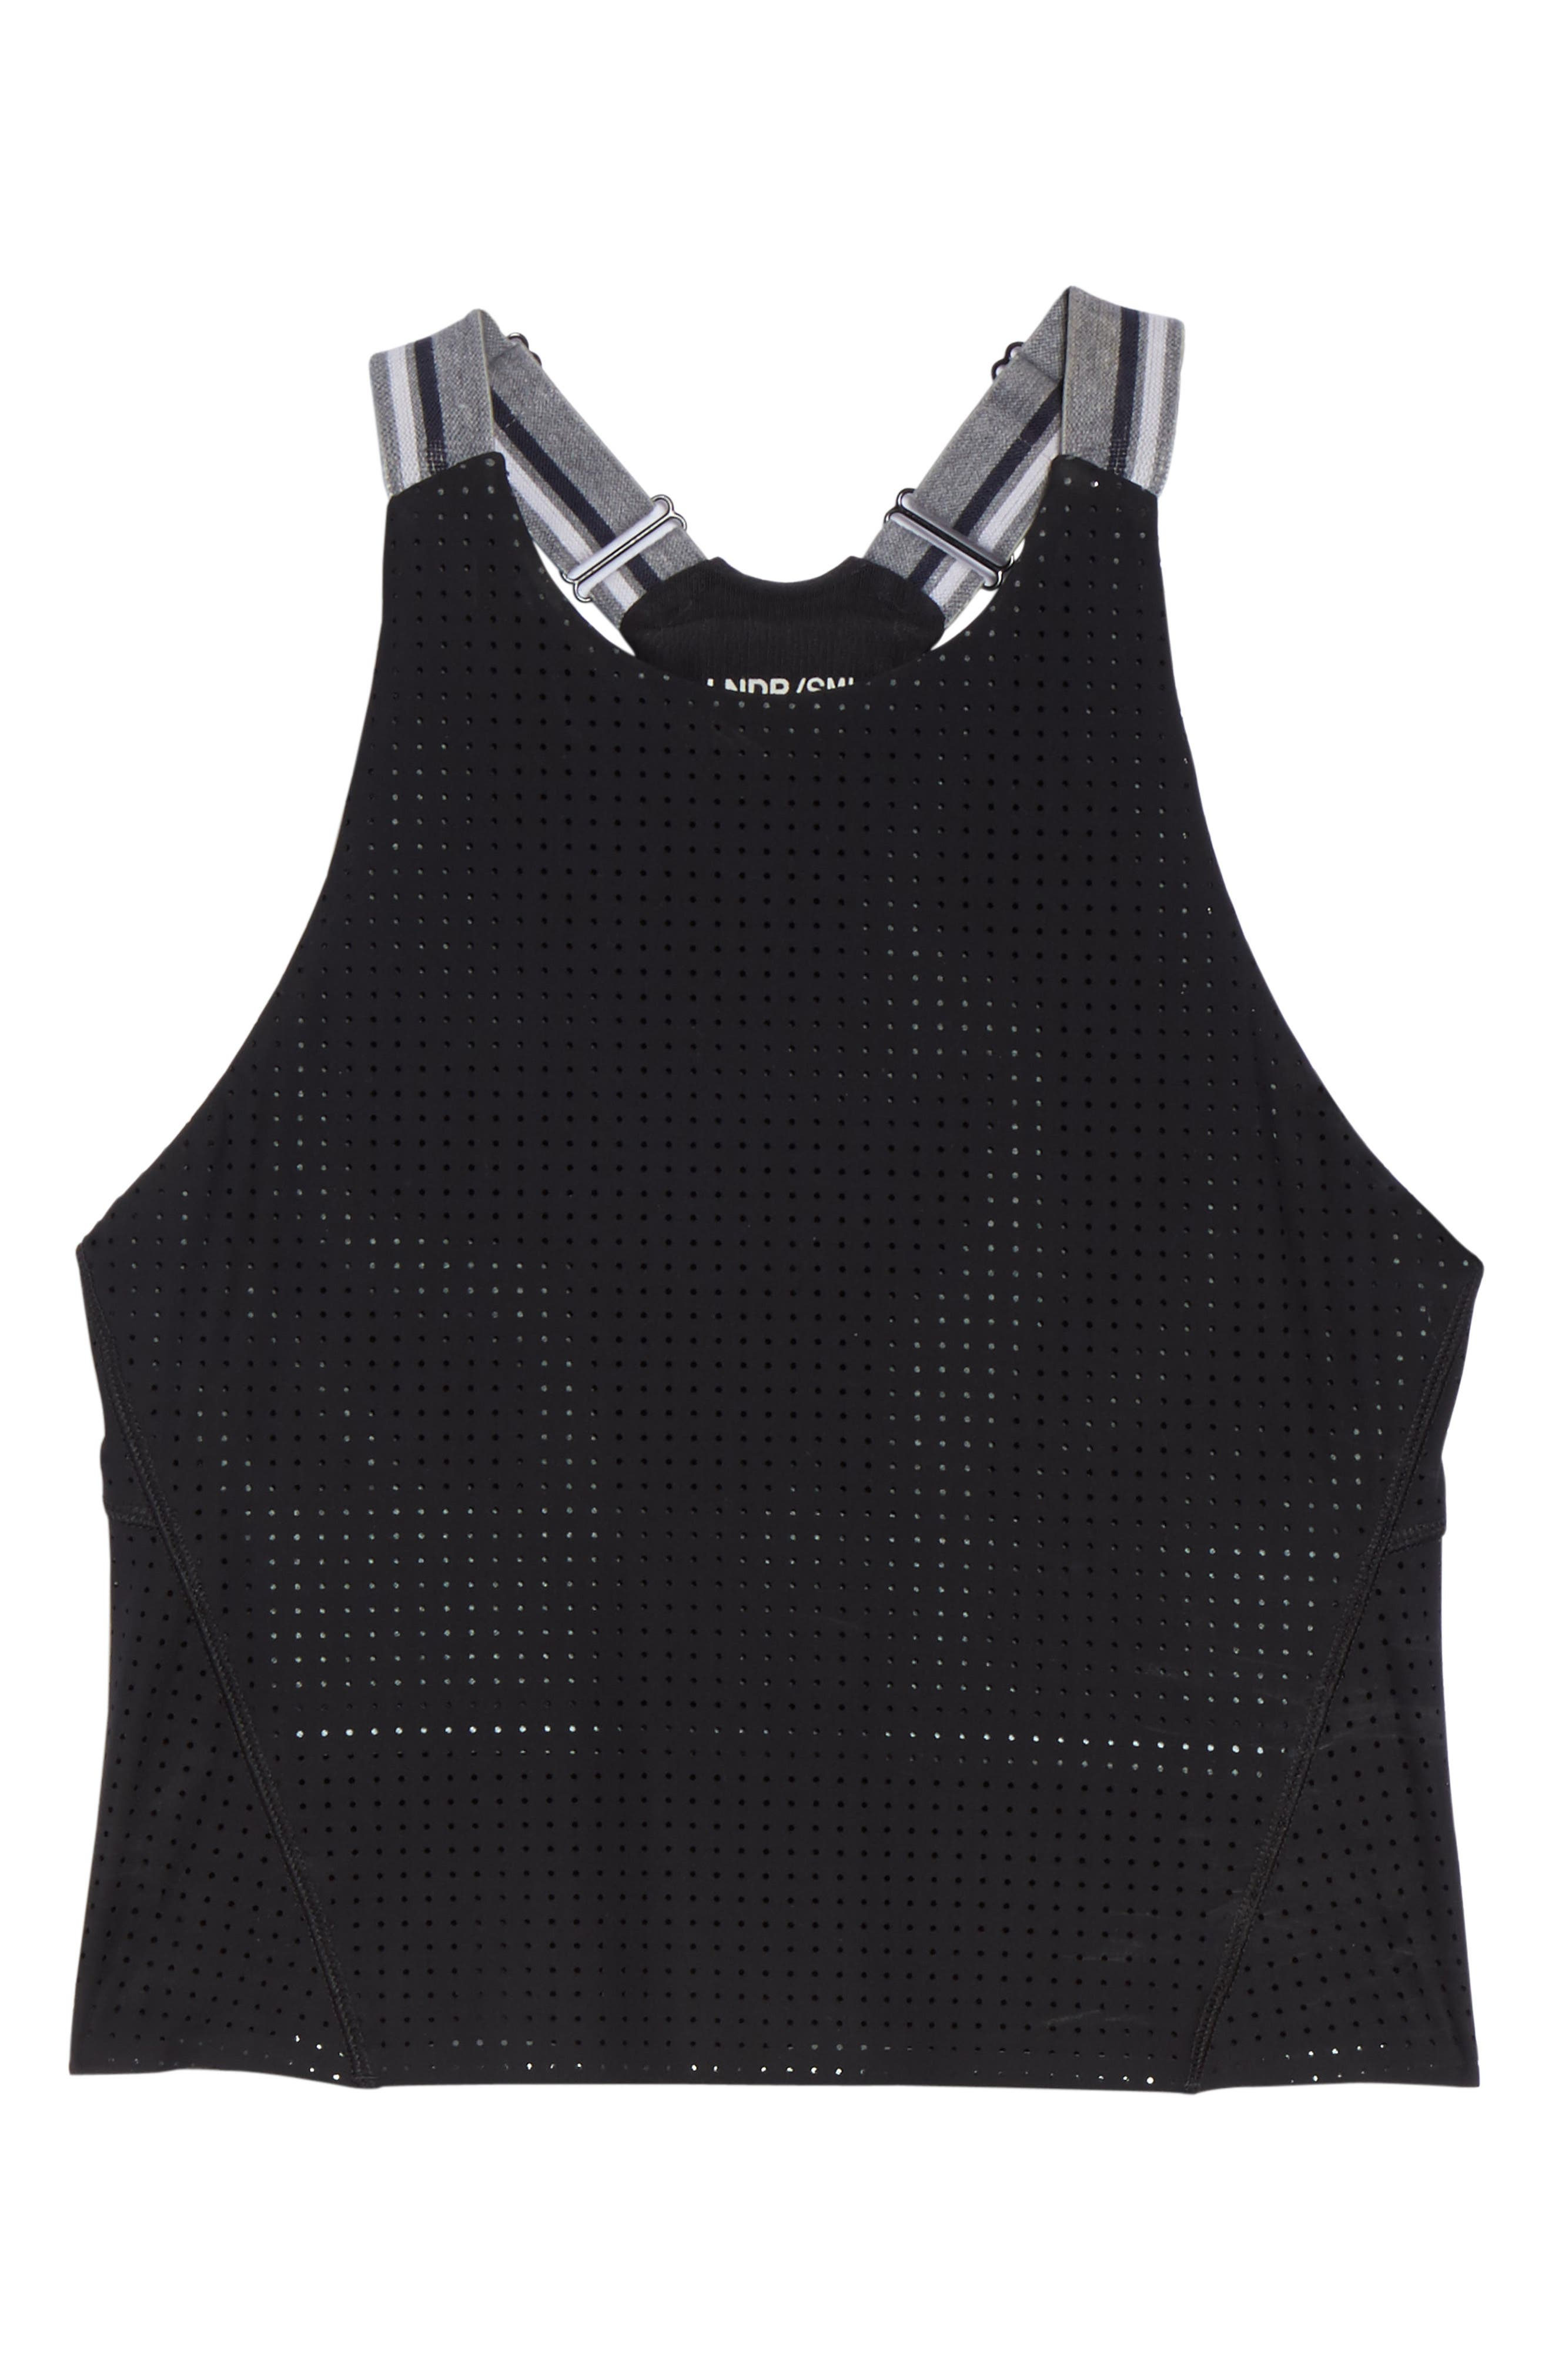 2-in-1 Crop Tank,                             Alternate thumbnail 6, color,                             Black